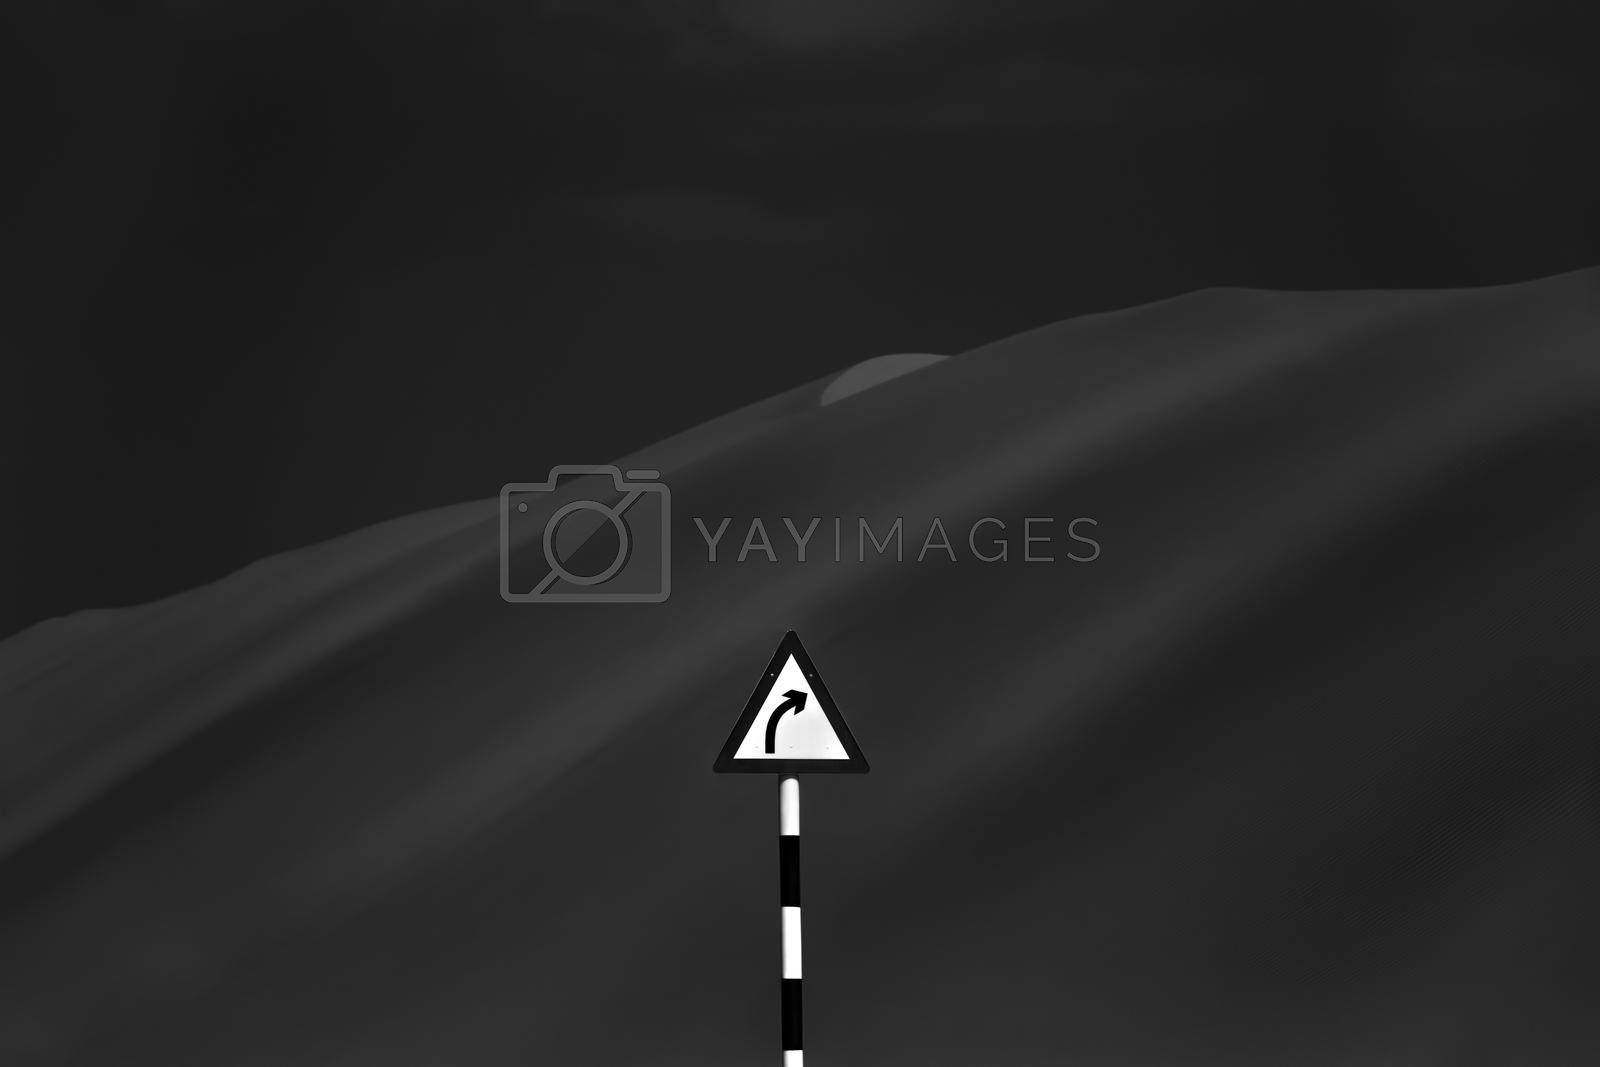 Black and White Photo of a Road Sign Turn among Desert Sand Dunes. Wild Mountains. Choosing Own Way to Escape.